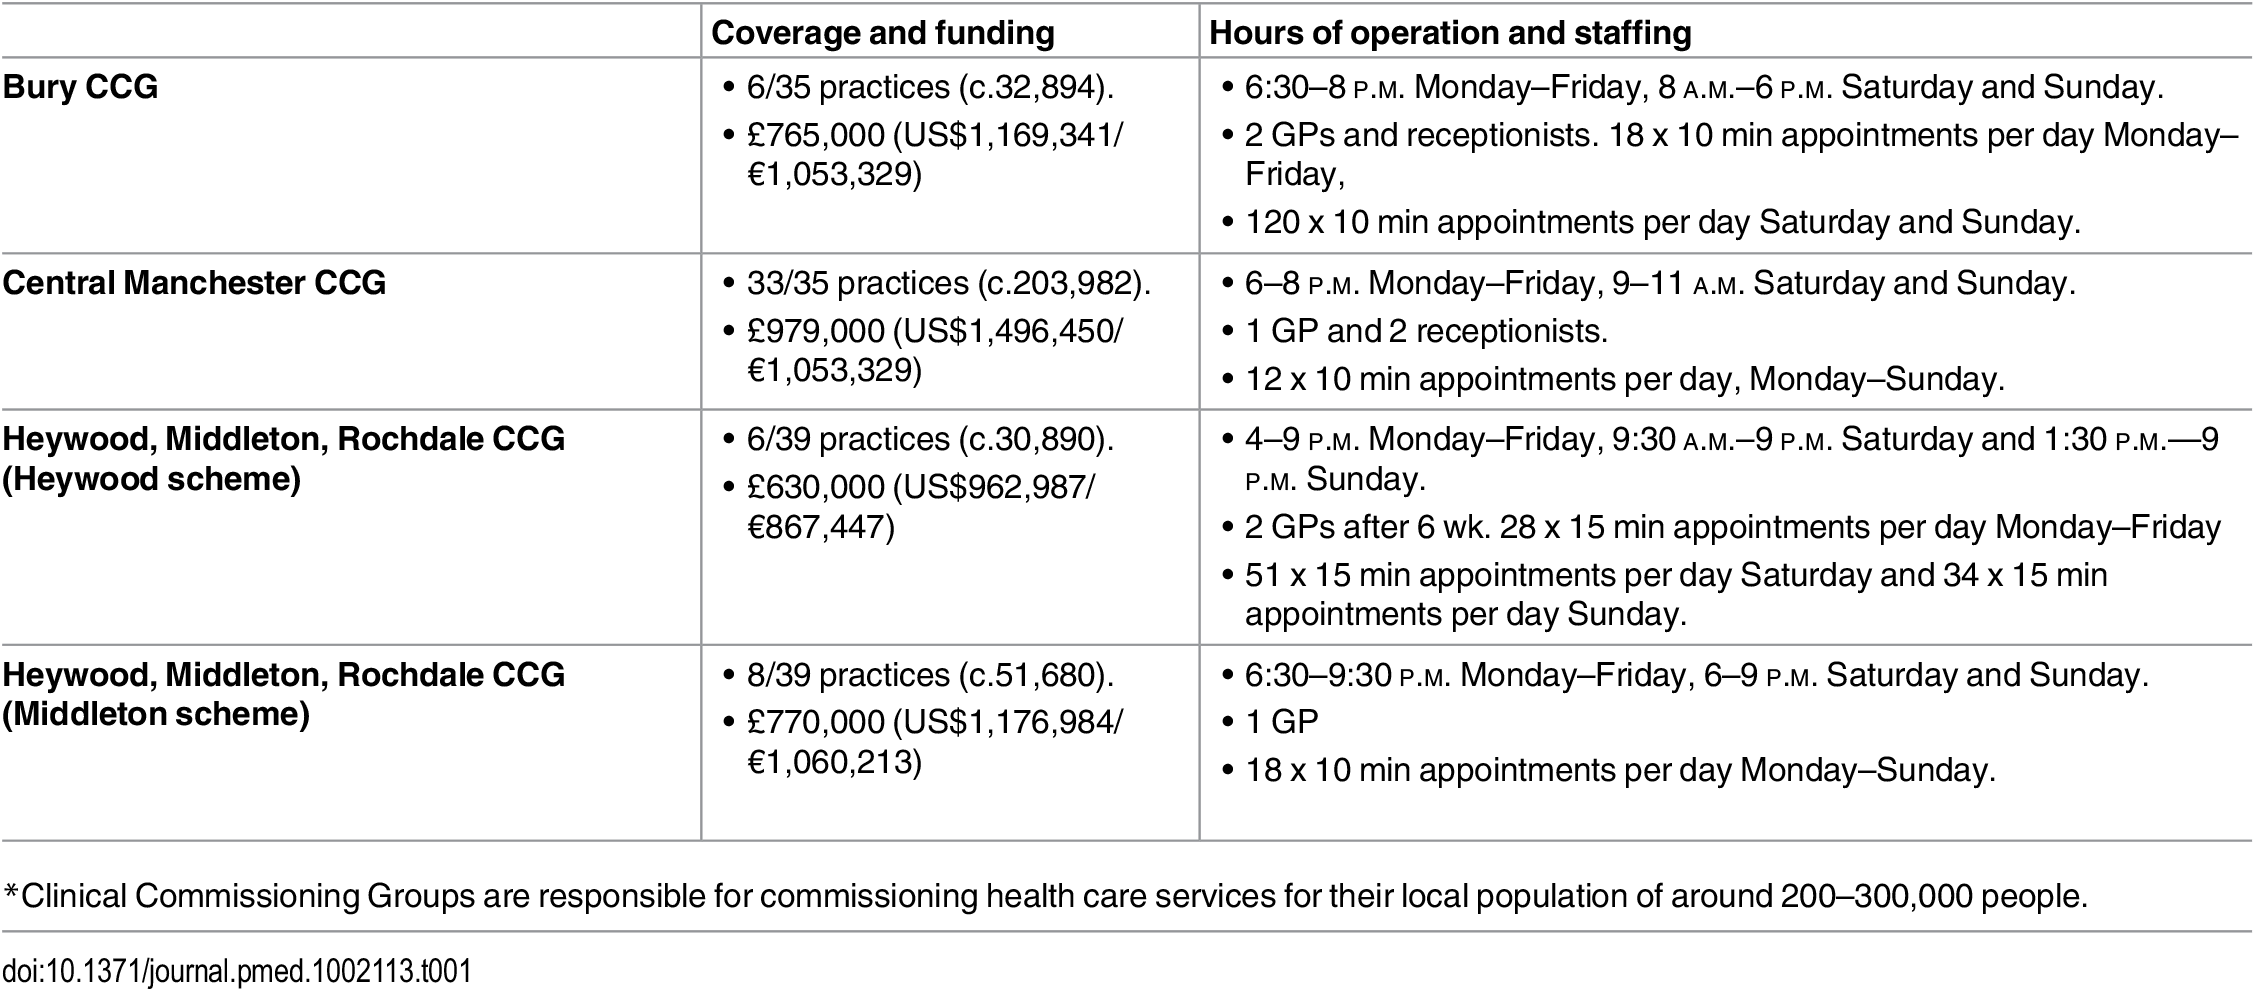 """Intervention description: Enhanced access to """"out-of-hours"""" primary care in each intervention practice Clinical Commissioning Group<em class=&quot;ref&quot;>*</em>."""